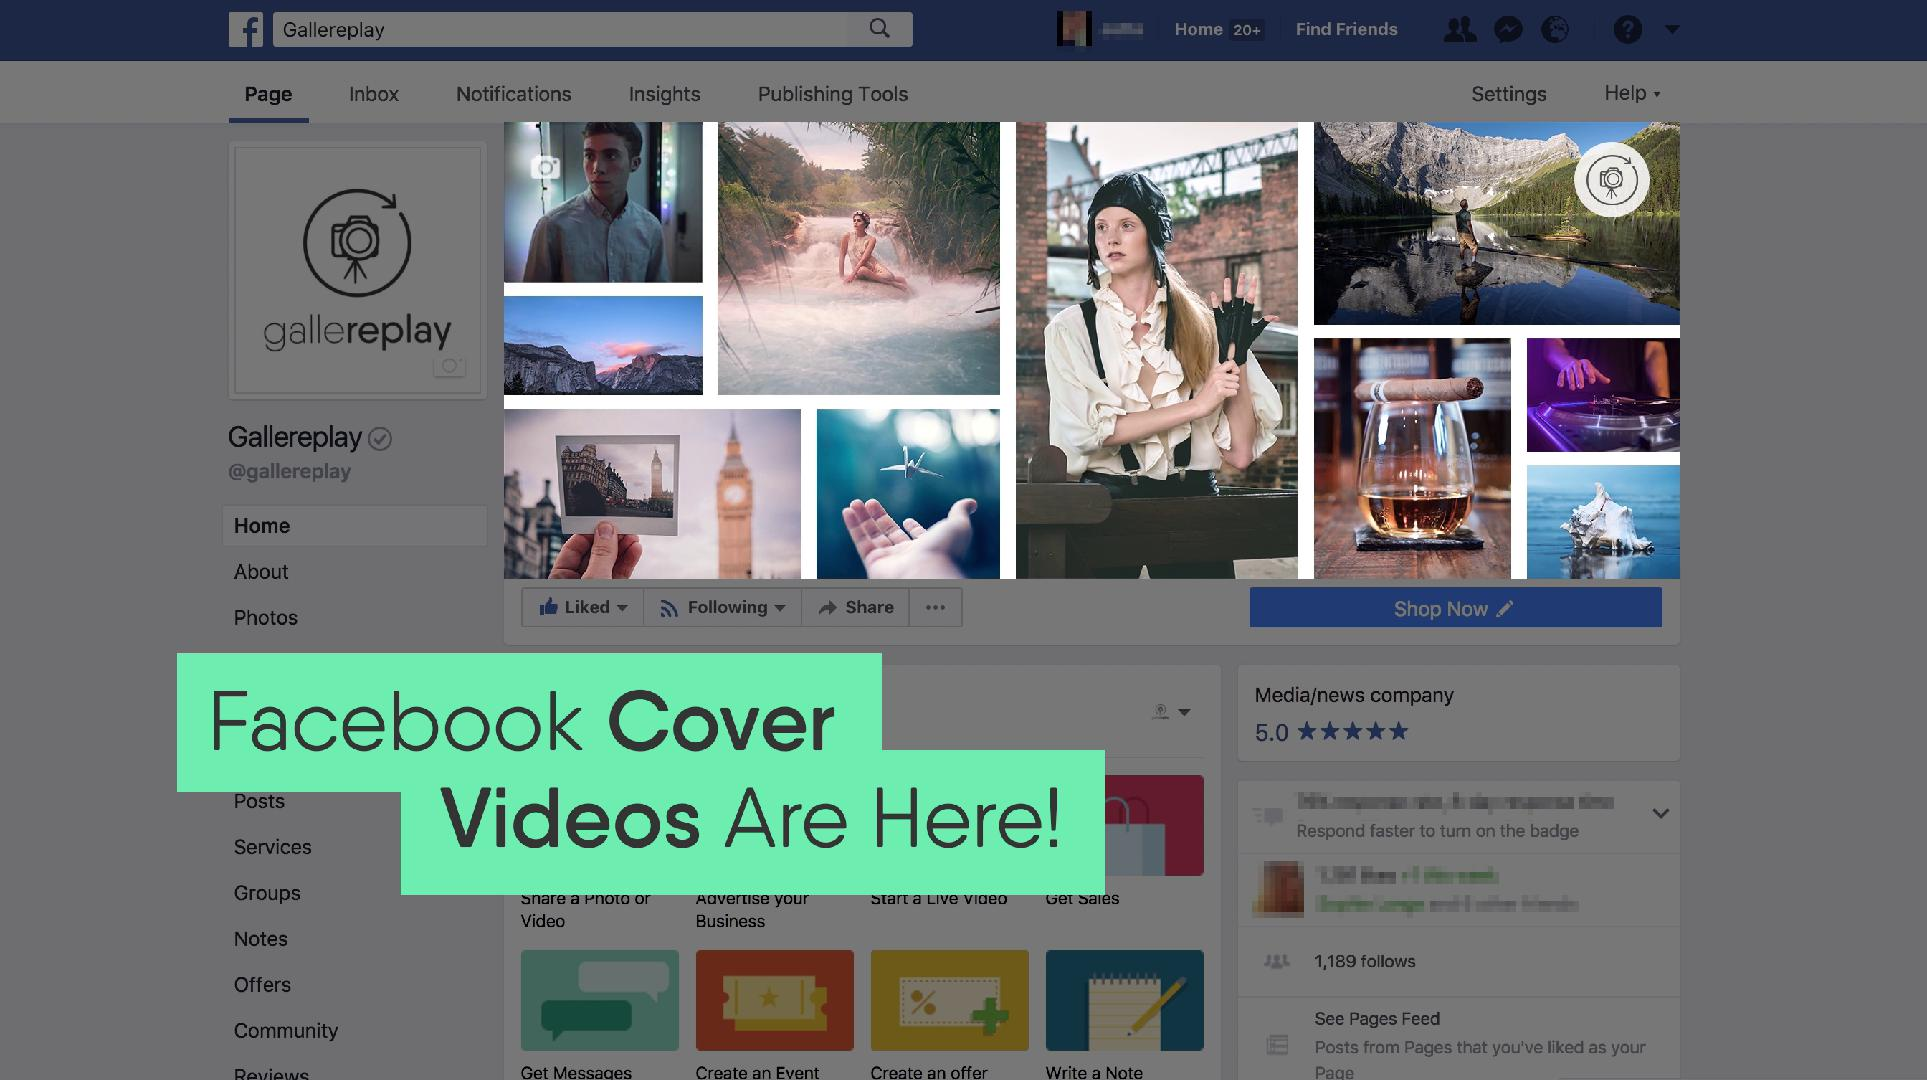 Everything You Need to Know About Facebook Cover Videos - In